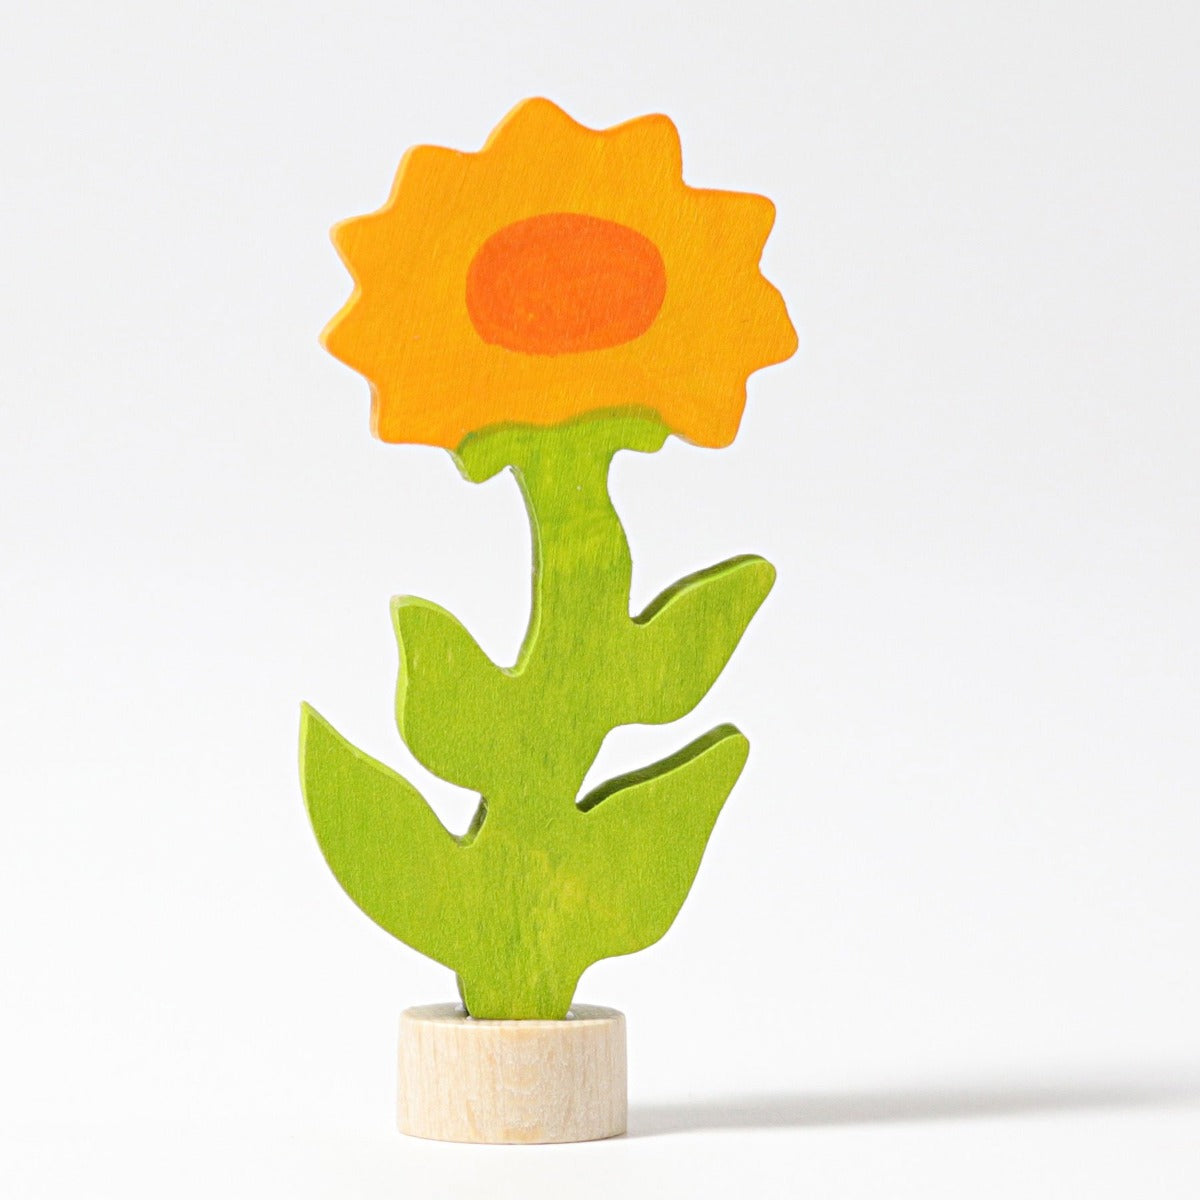 Grimms Calendula Flower figurine at Little Sprout